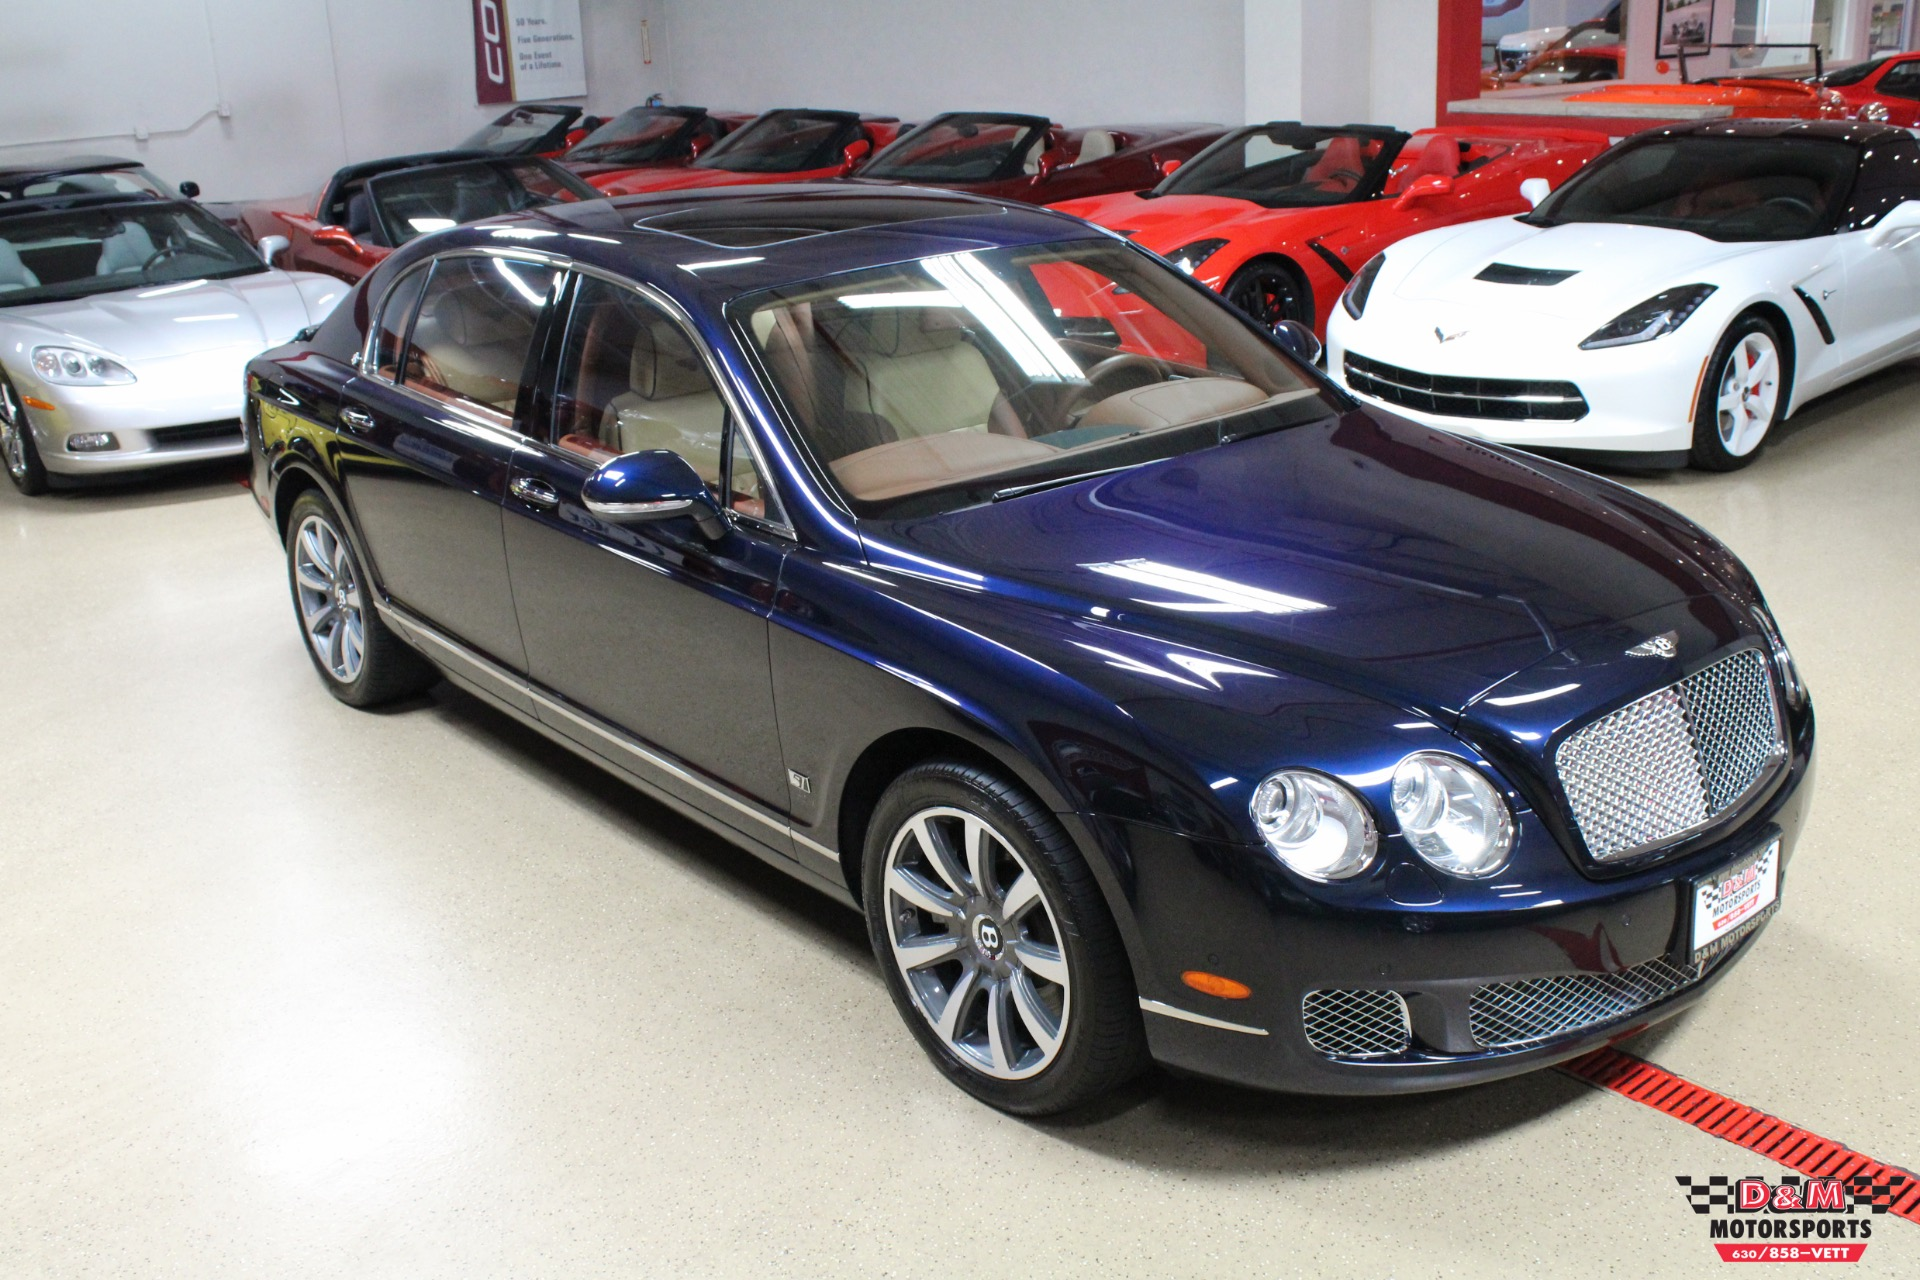 sale classifieds spur for flying bentley continental essex used cars in